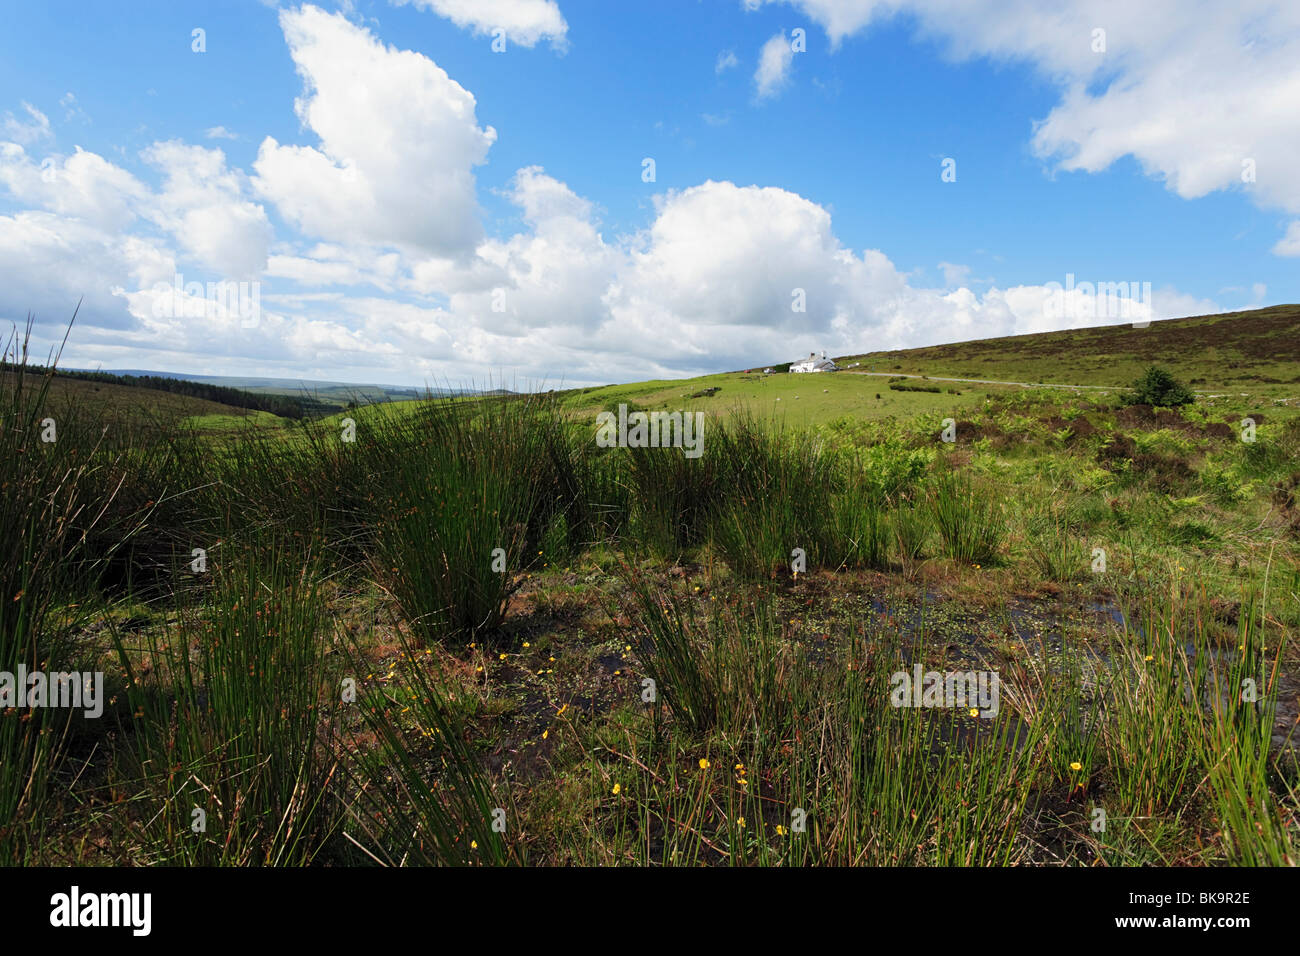 Warren House Inn on a hill, Postbridge, Dartmoor, Devon, England, United Kingdom - Stock Image